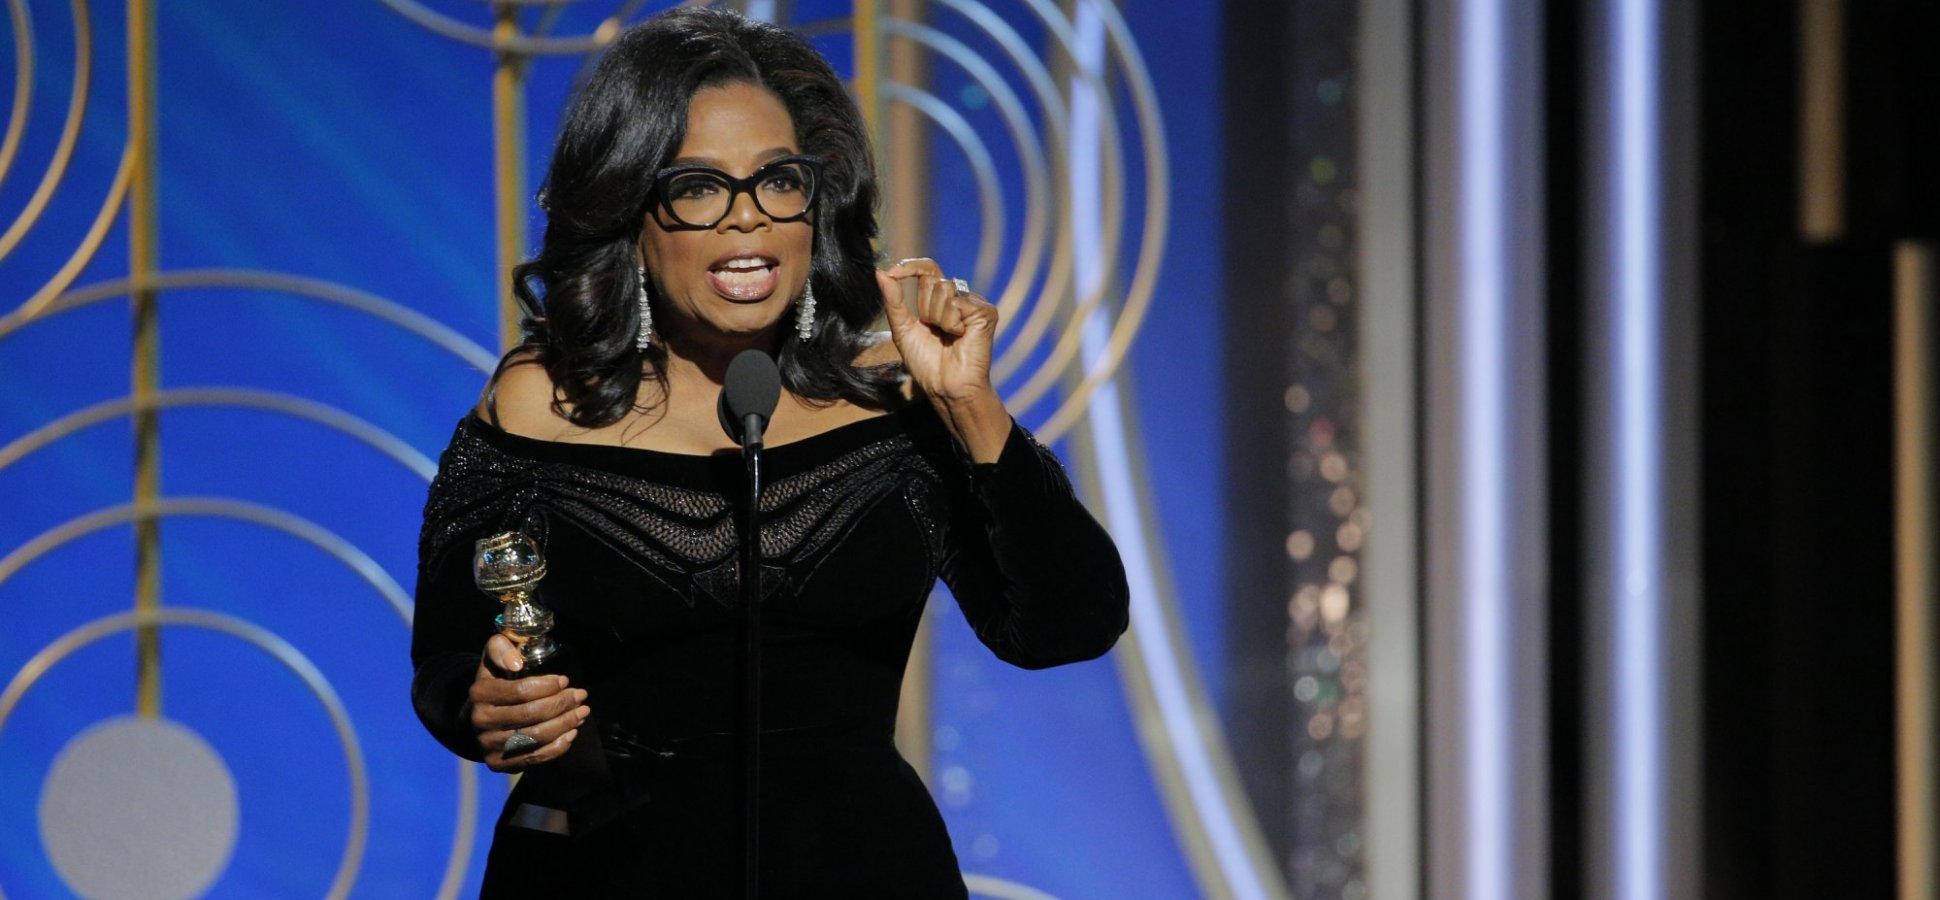 Oprah Just Gave an Incredibly Powerful Commencement Speech at USC. Here's How She Did It